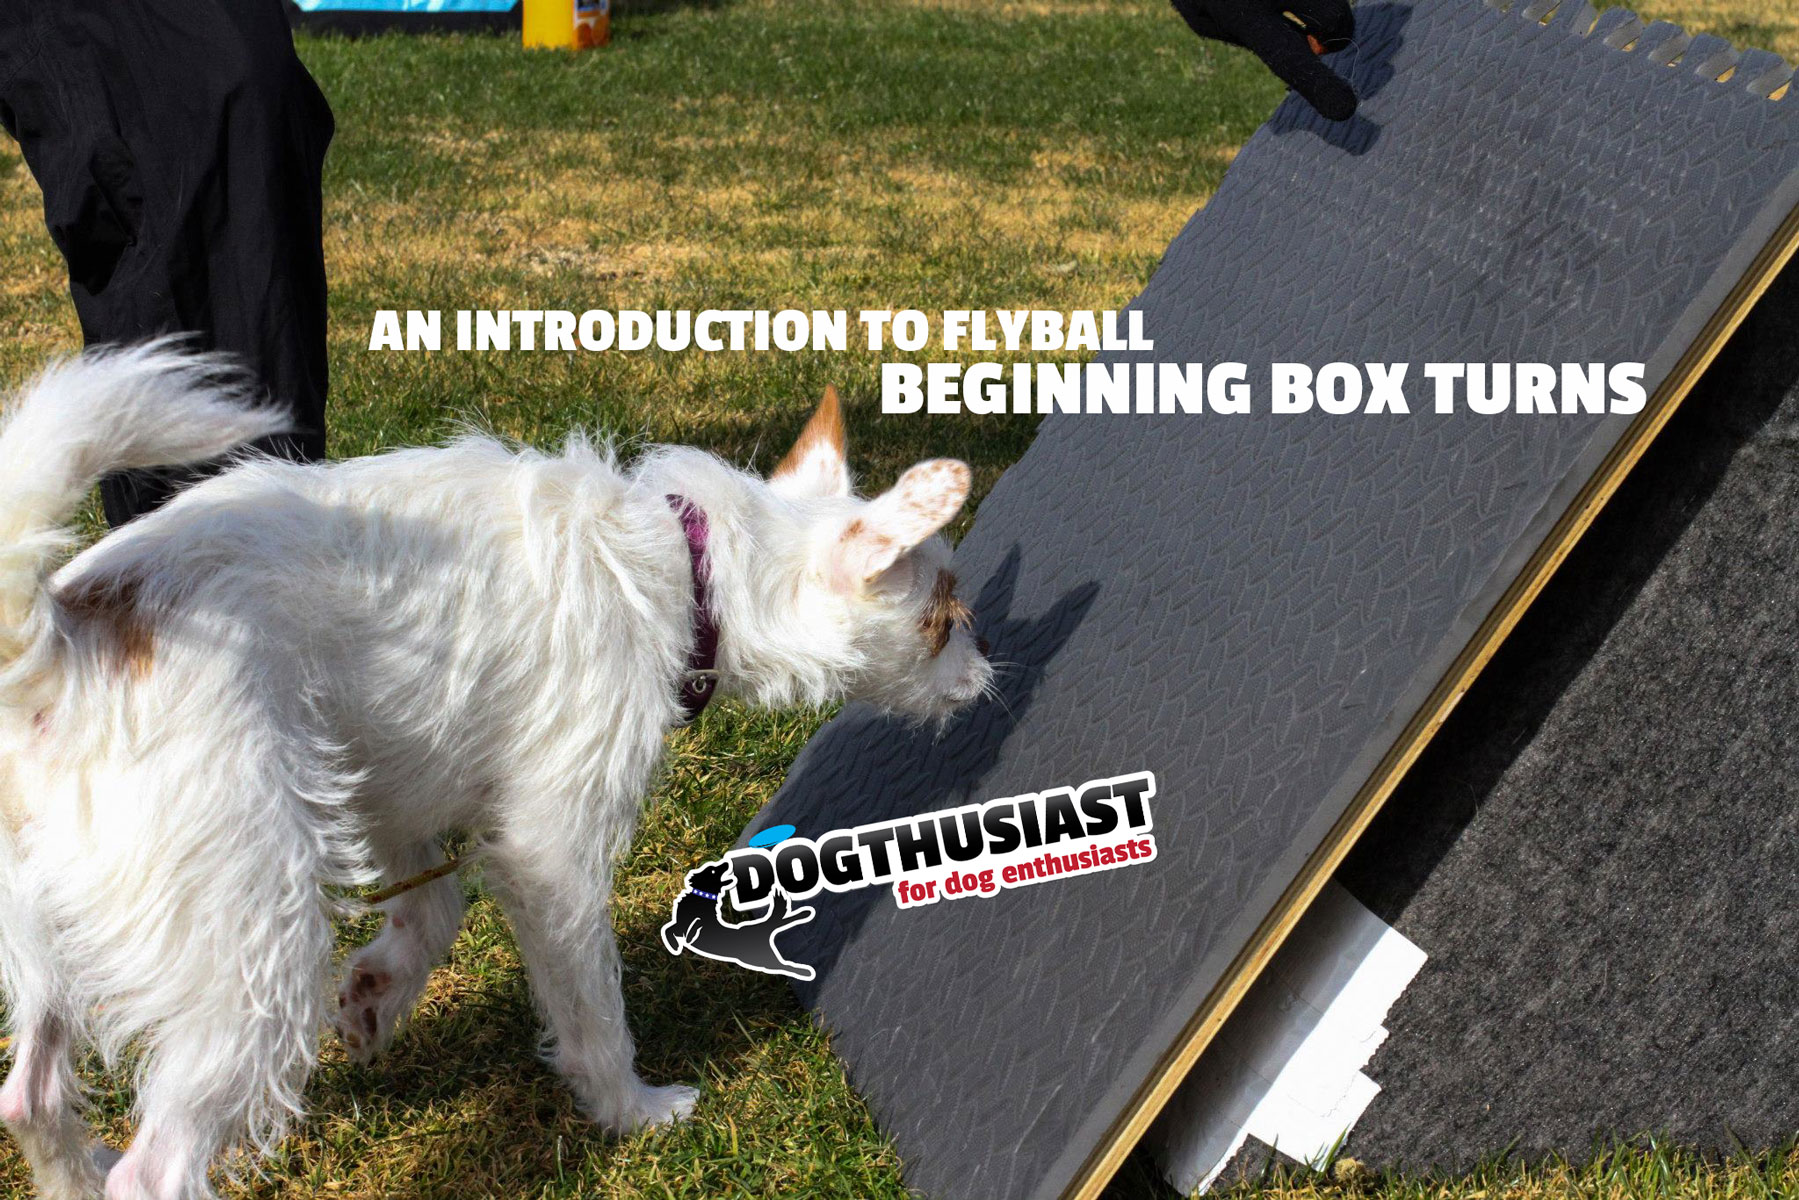 An Introduction to Flyball: Using a ramp to start learning box turns